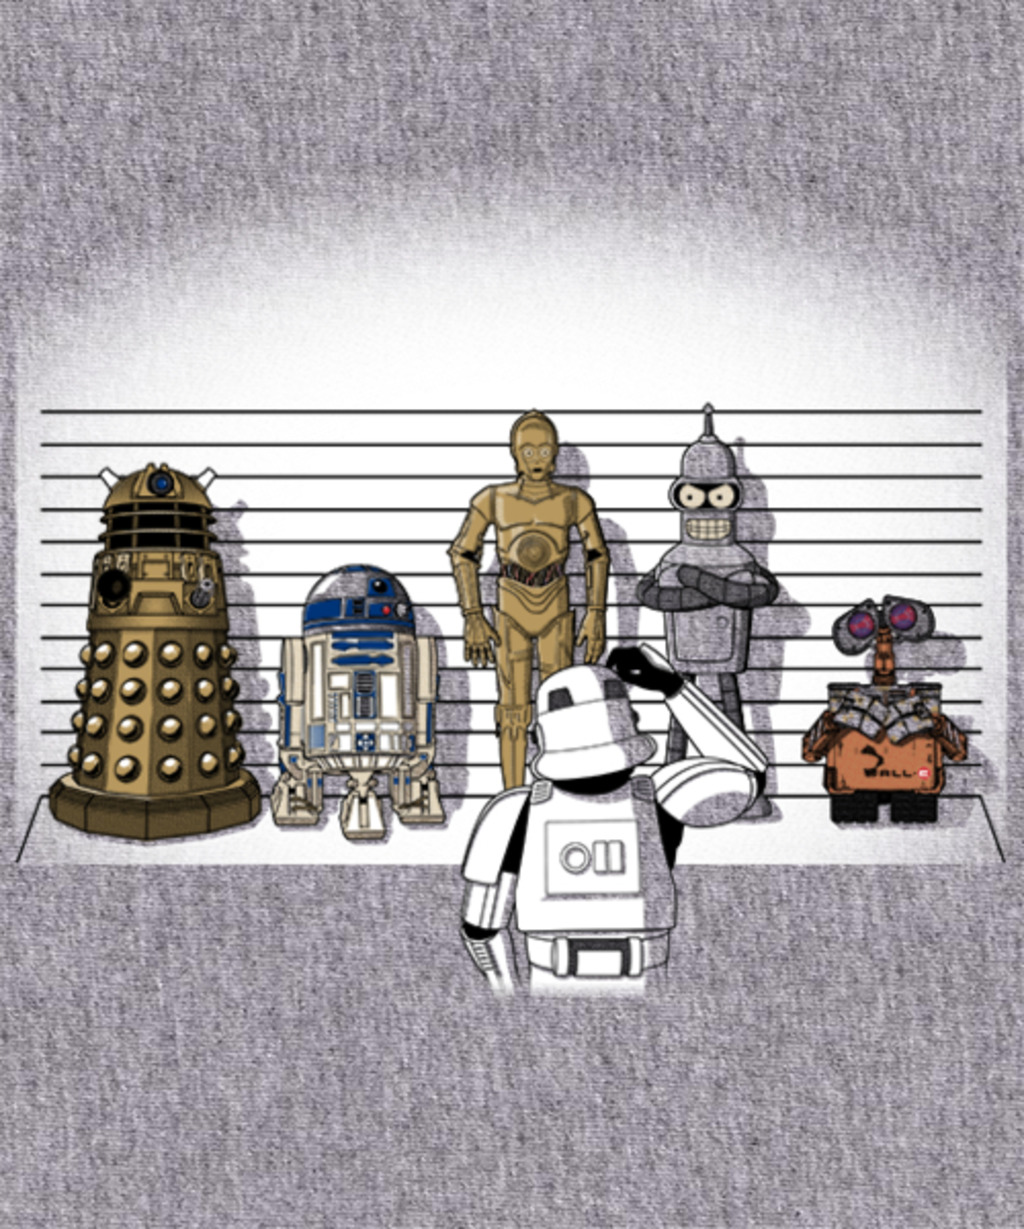 Qwertee: Are These The Droids You're Looking For?